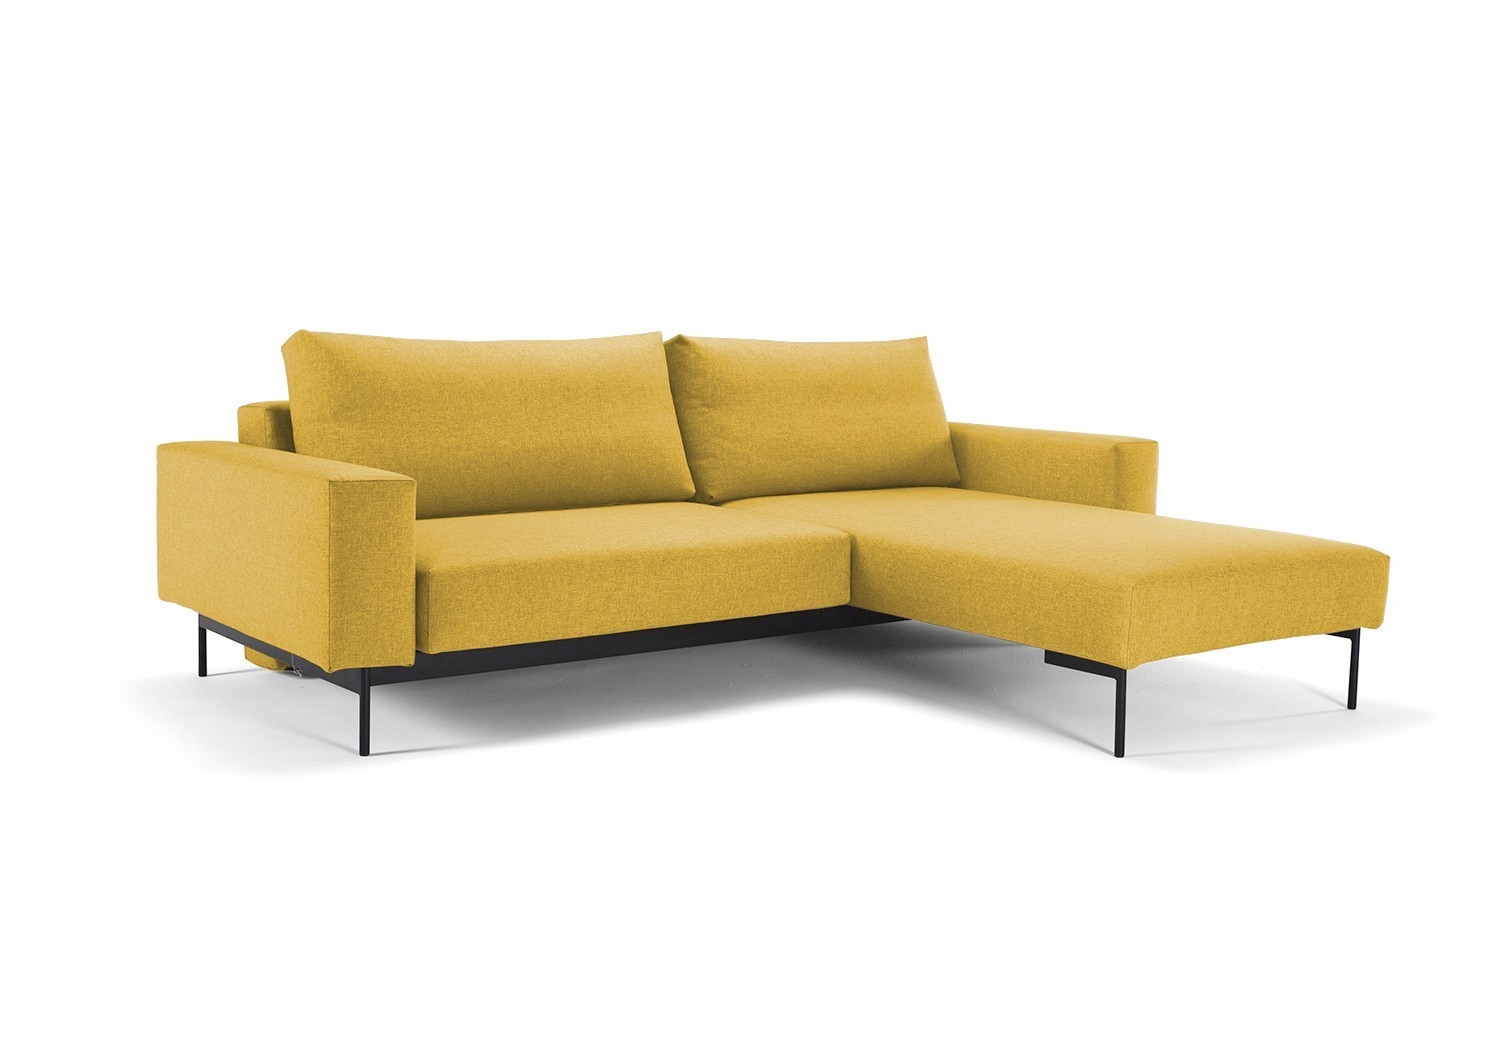 Bragi chaise sofa bed with arms innovation living for Chaise sofa bed